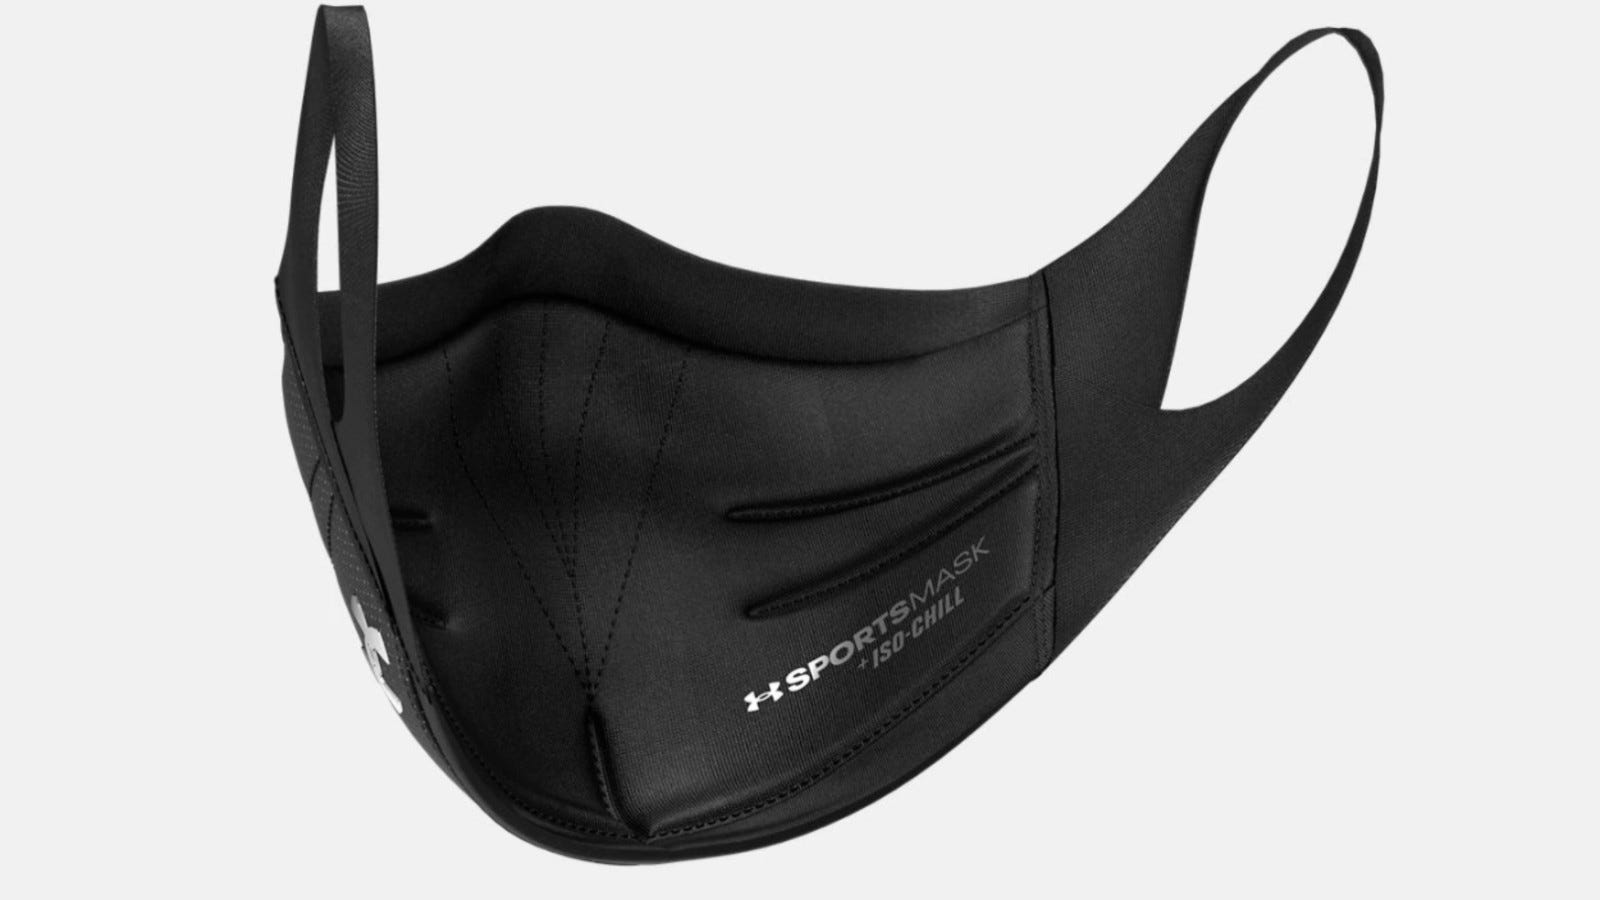 The UnderArmour SportsMask.